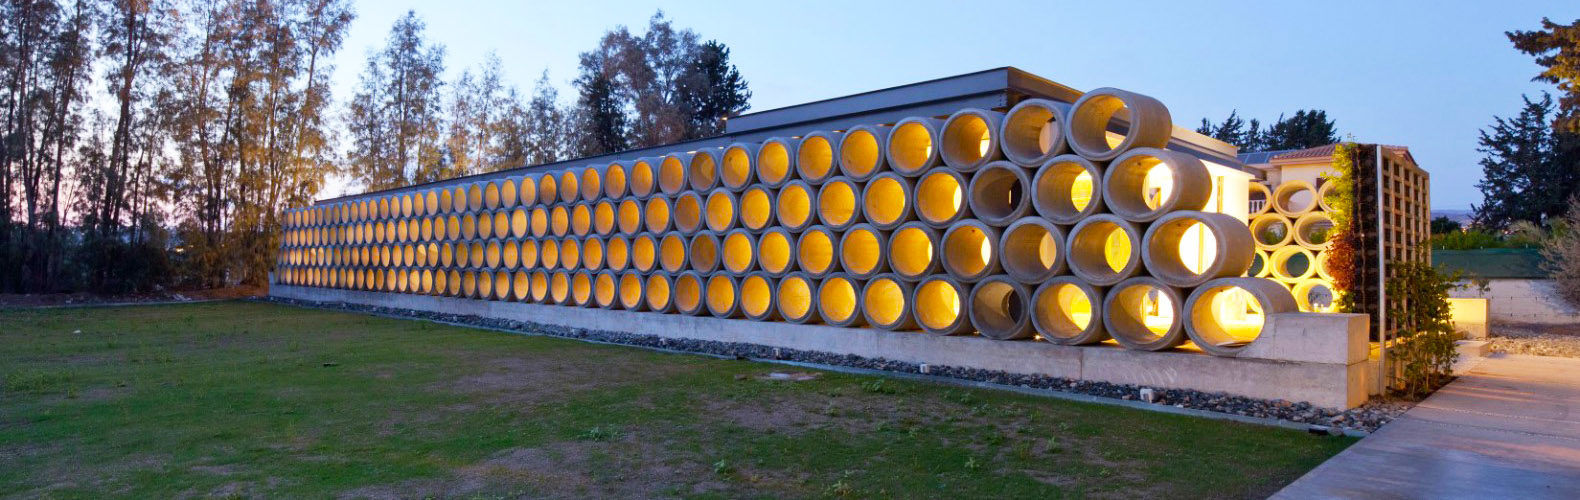 Screens made out of raw concrete pipes provide privacy for this chic modern  home | Inhabitat - Green Design, Innovation, Architecture, Green Building